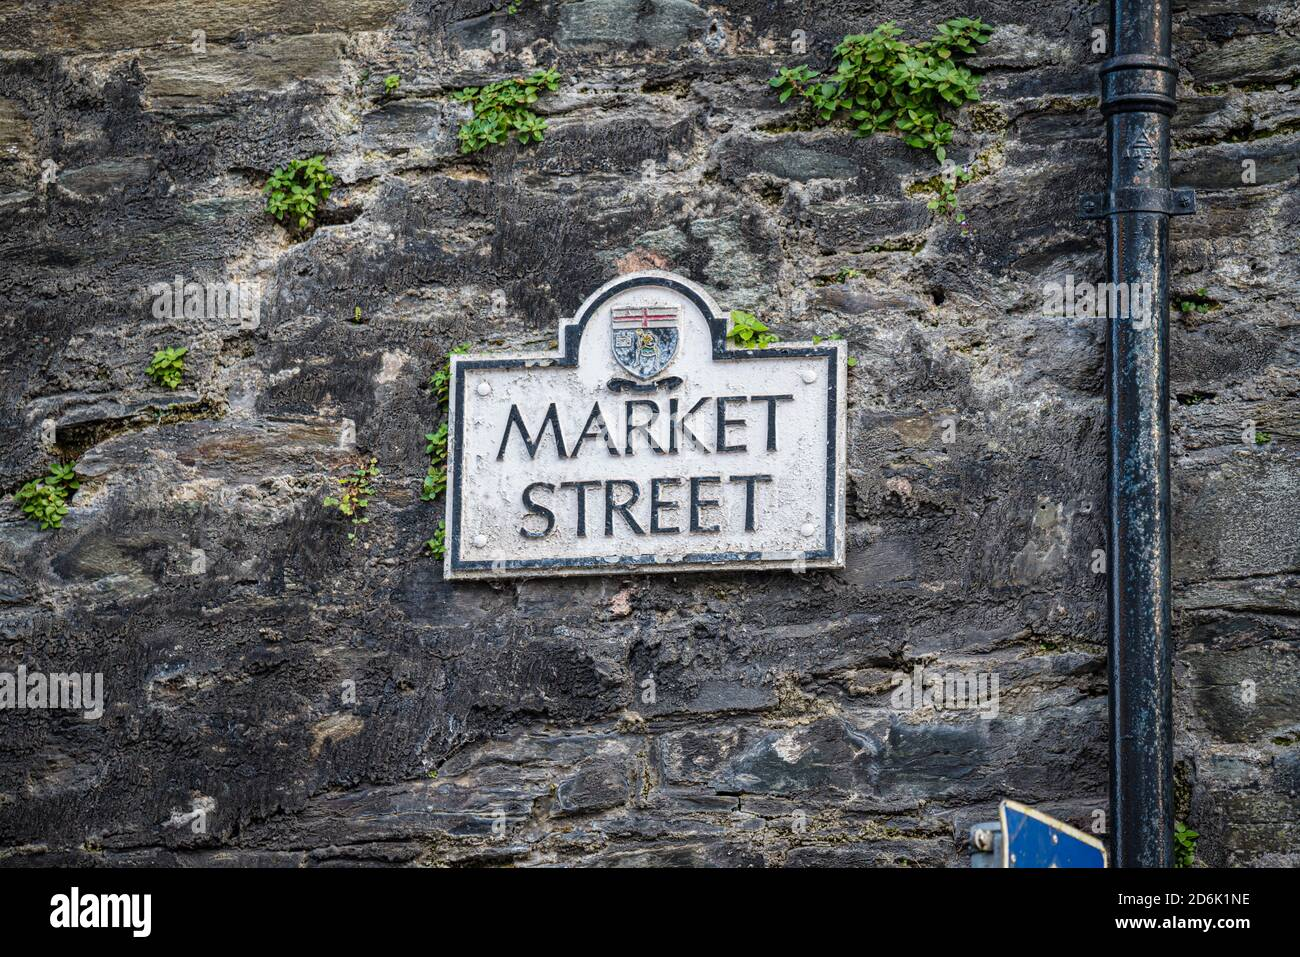 Derry, Northern Ireland- Sept 27, 2020: The sign for Market Street in Derry. Stock Photo